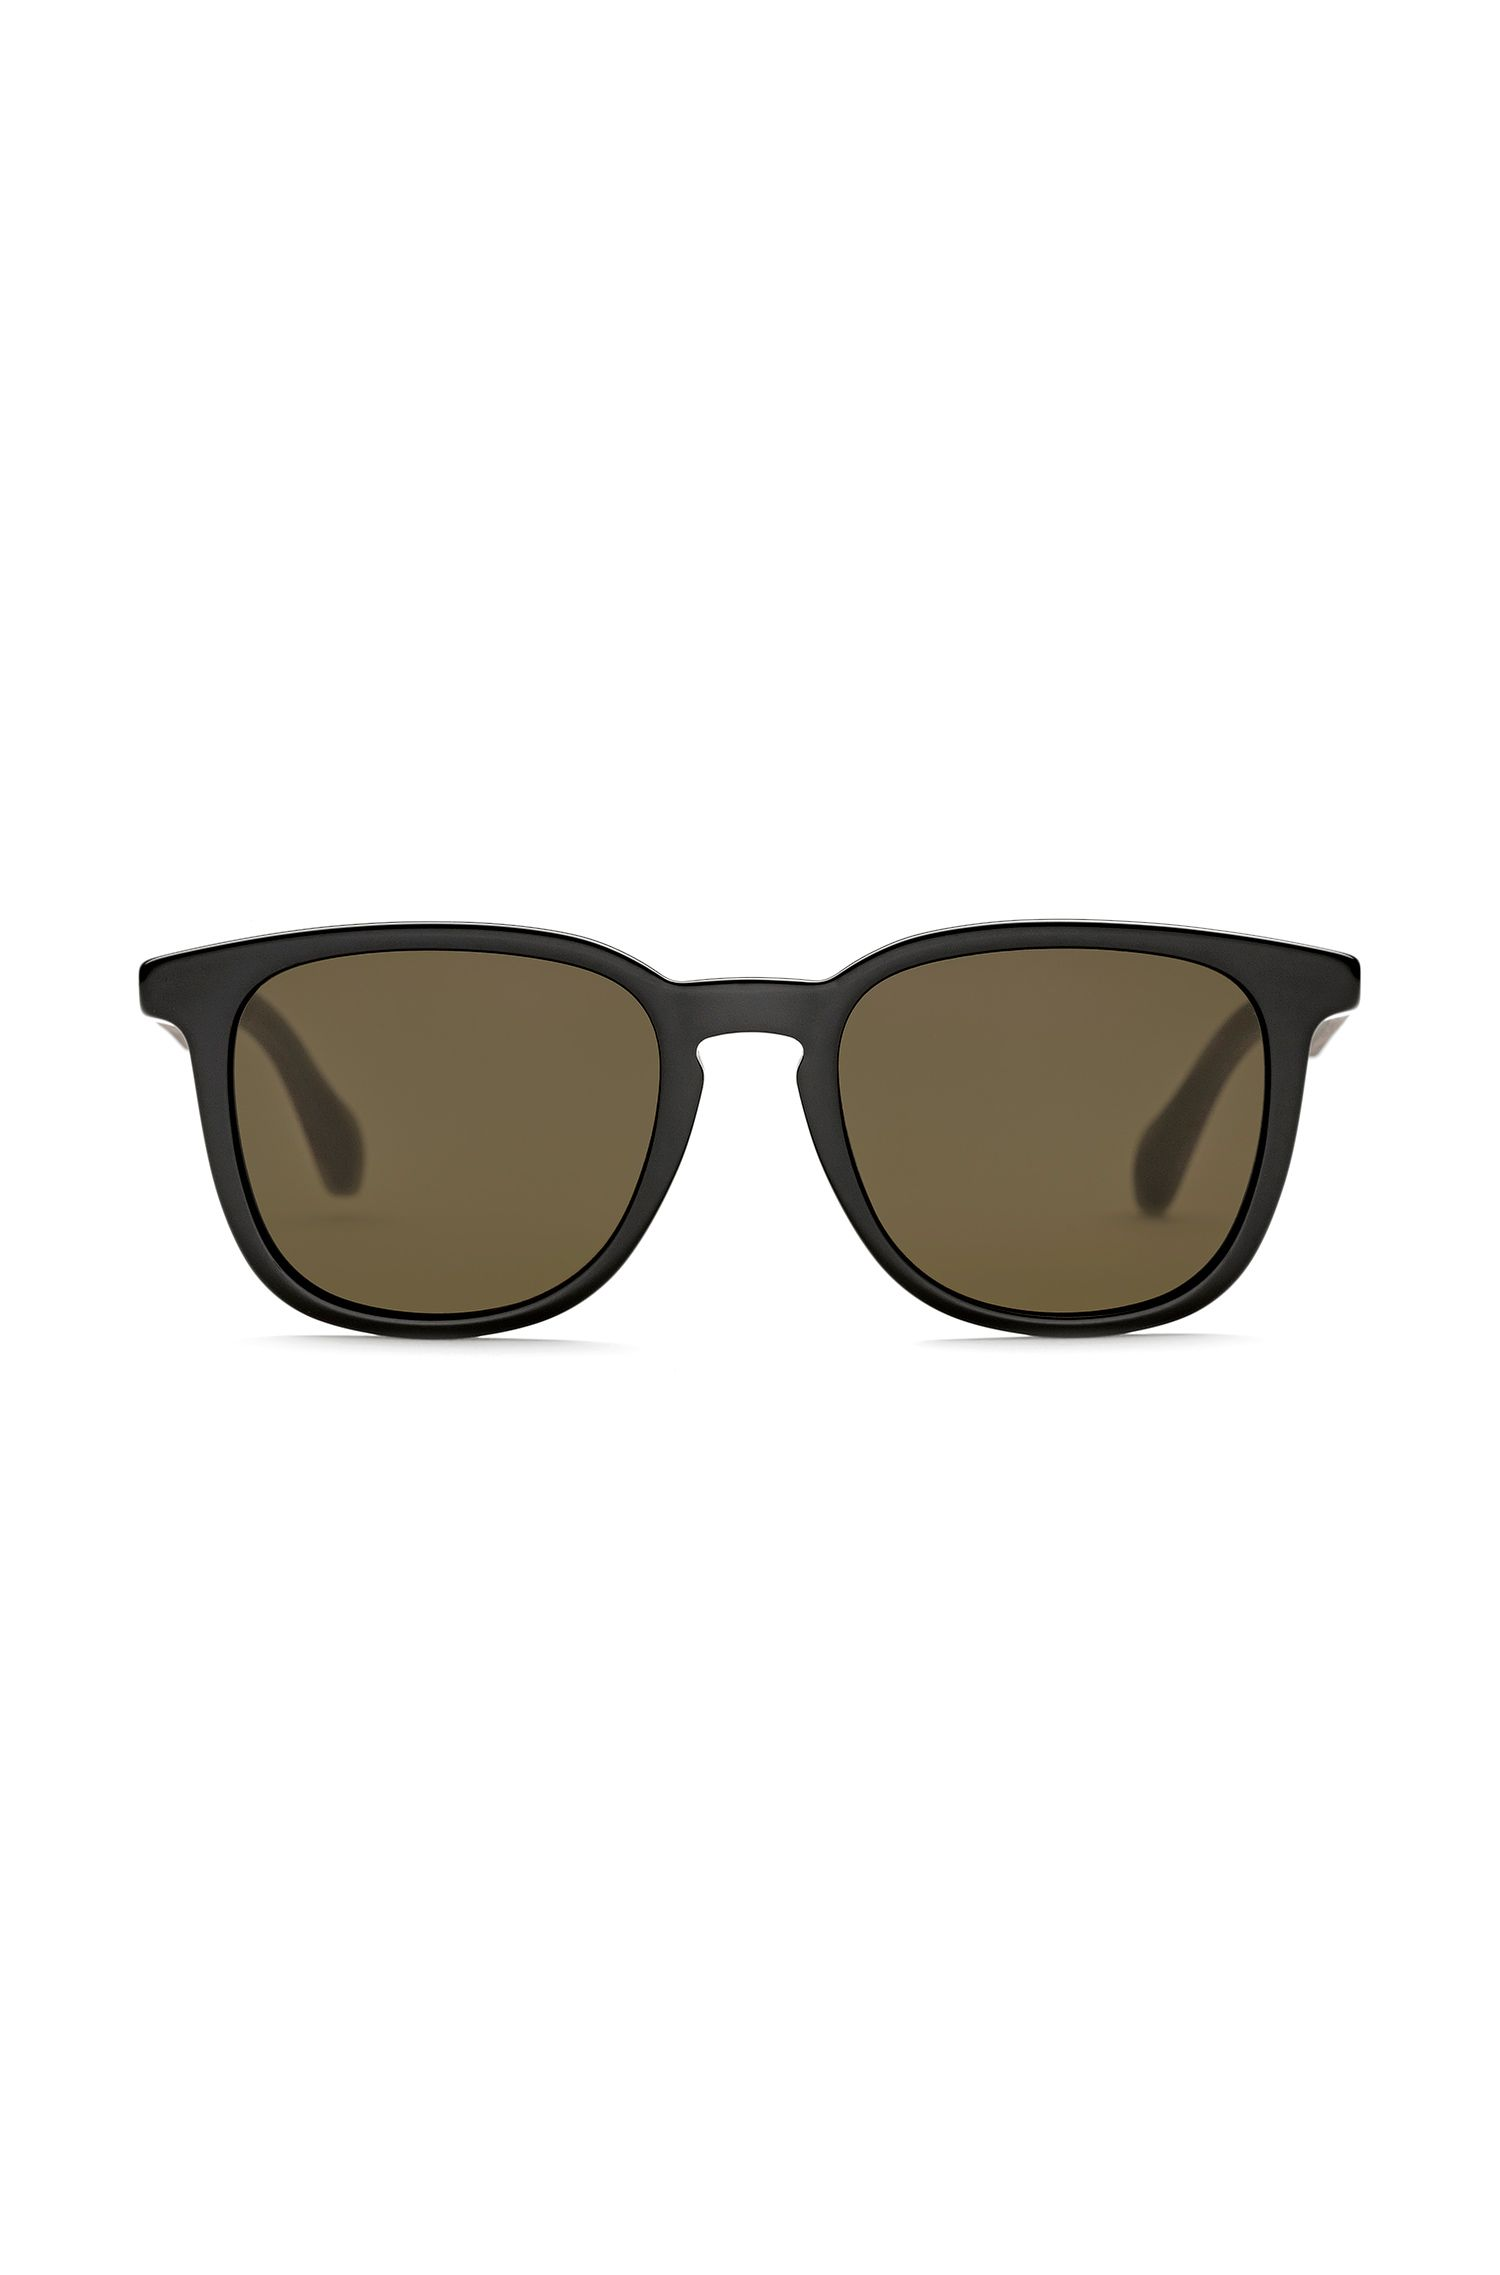 Acetate sunglasses with wooden temples, Brown